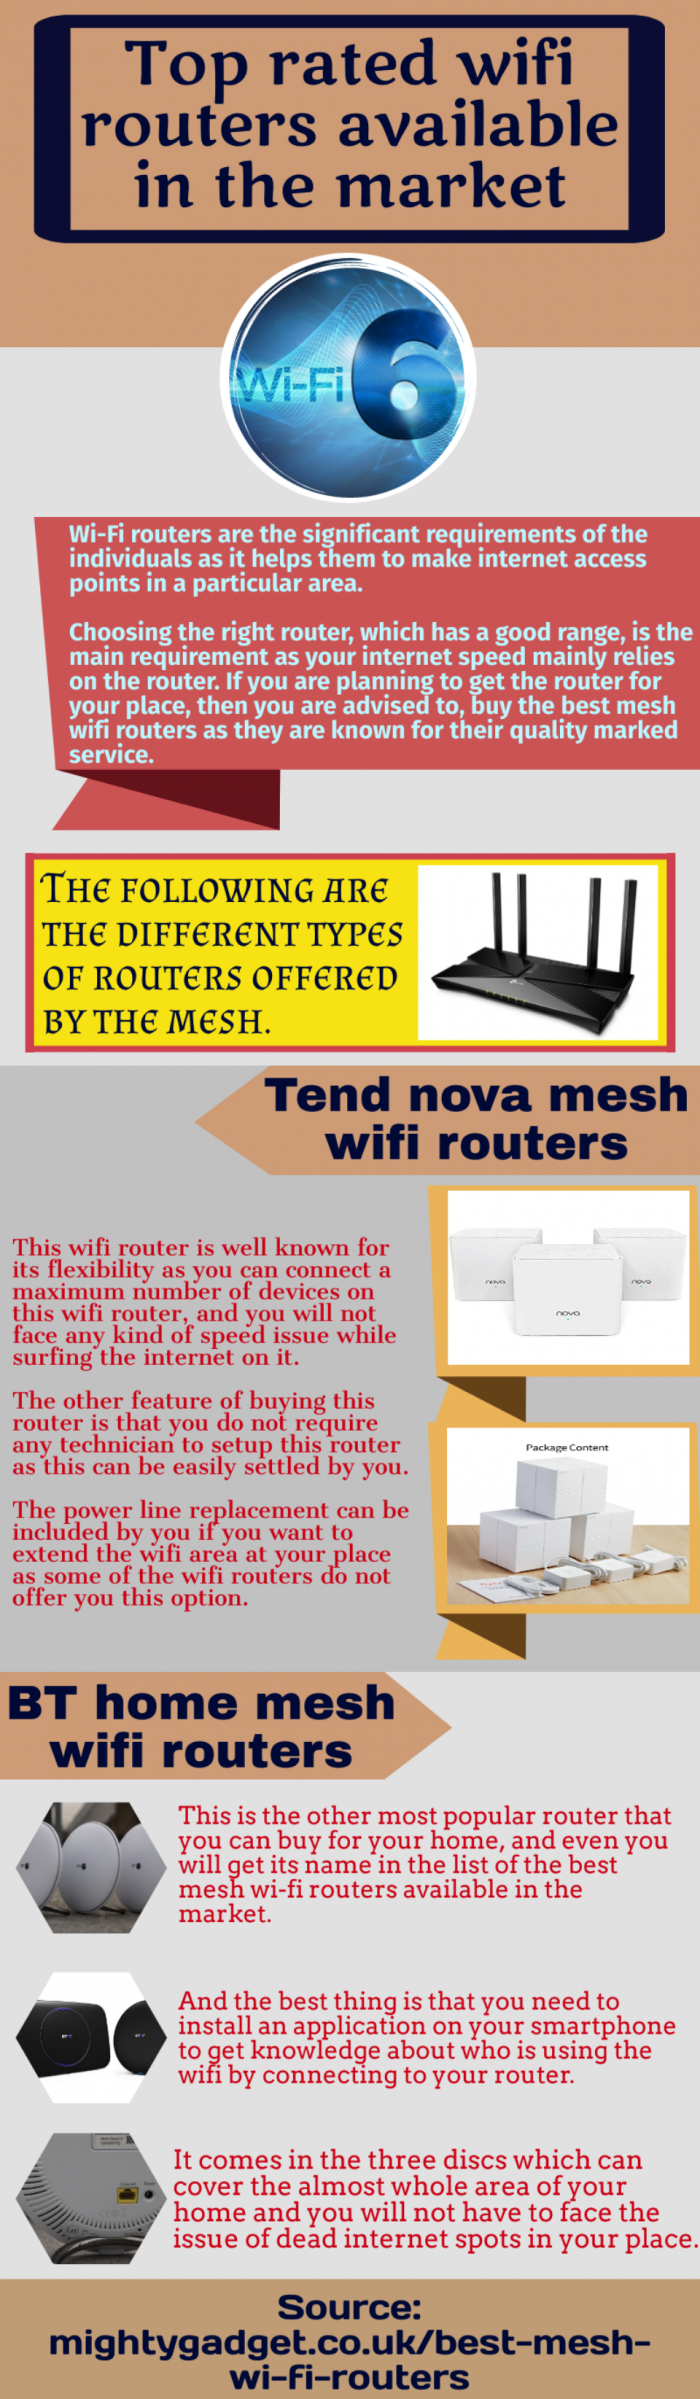 Mesh Wi-Fi routers-Easy to operate the router